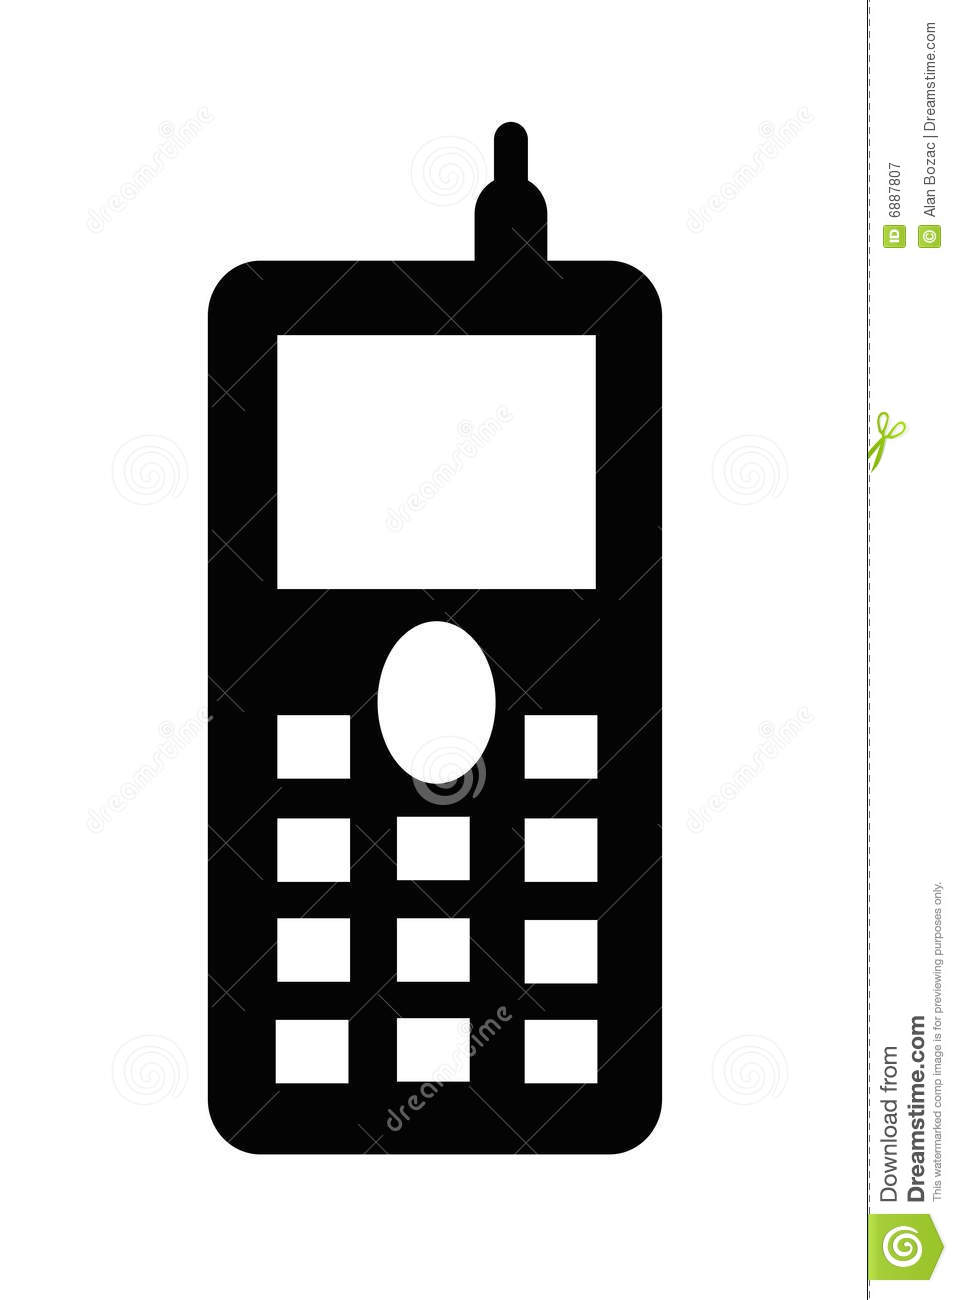 Cell Phone Clipart Black And White | Clipart Panda - Free Clipart ...